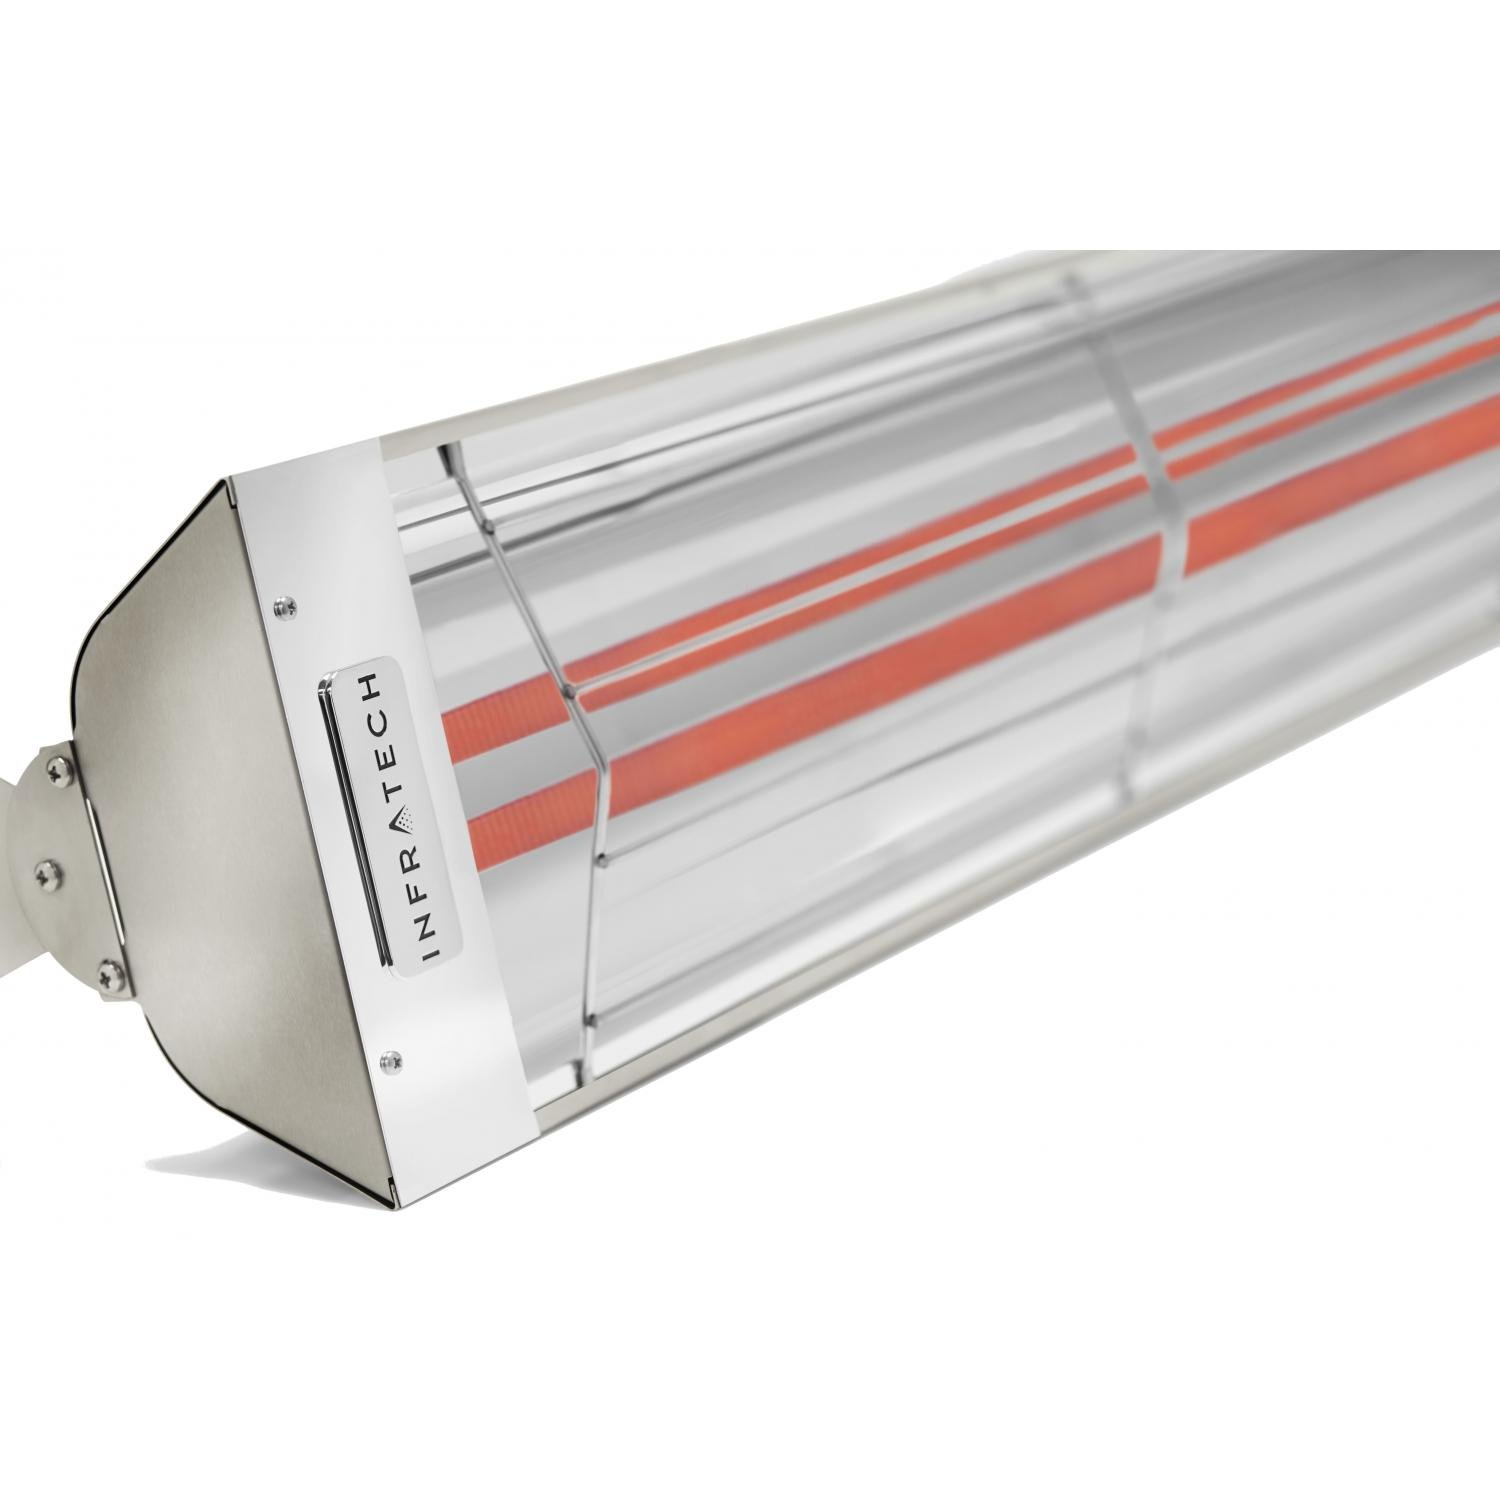 Infratech Wd-series 39-inch 5000w Dual Element Electric Infrared Patio Heater - 240v - Stainless Steel - Wd5024ss